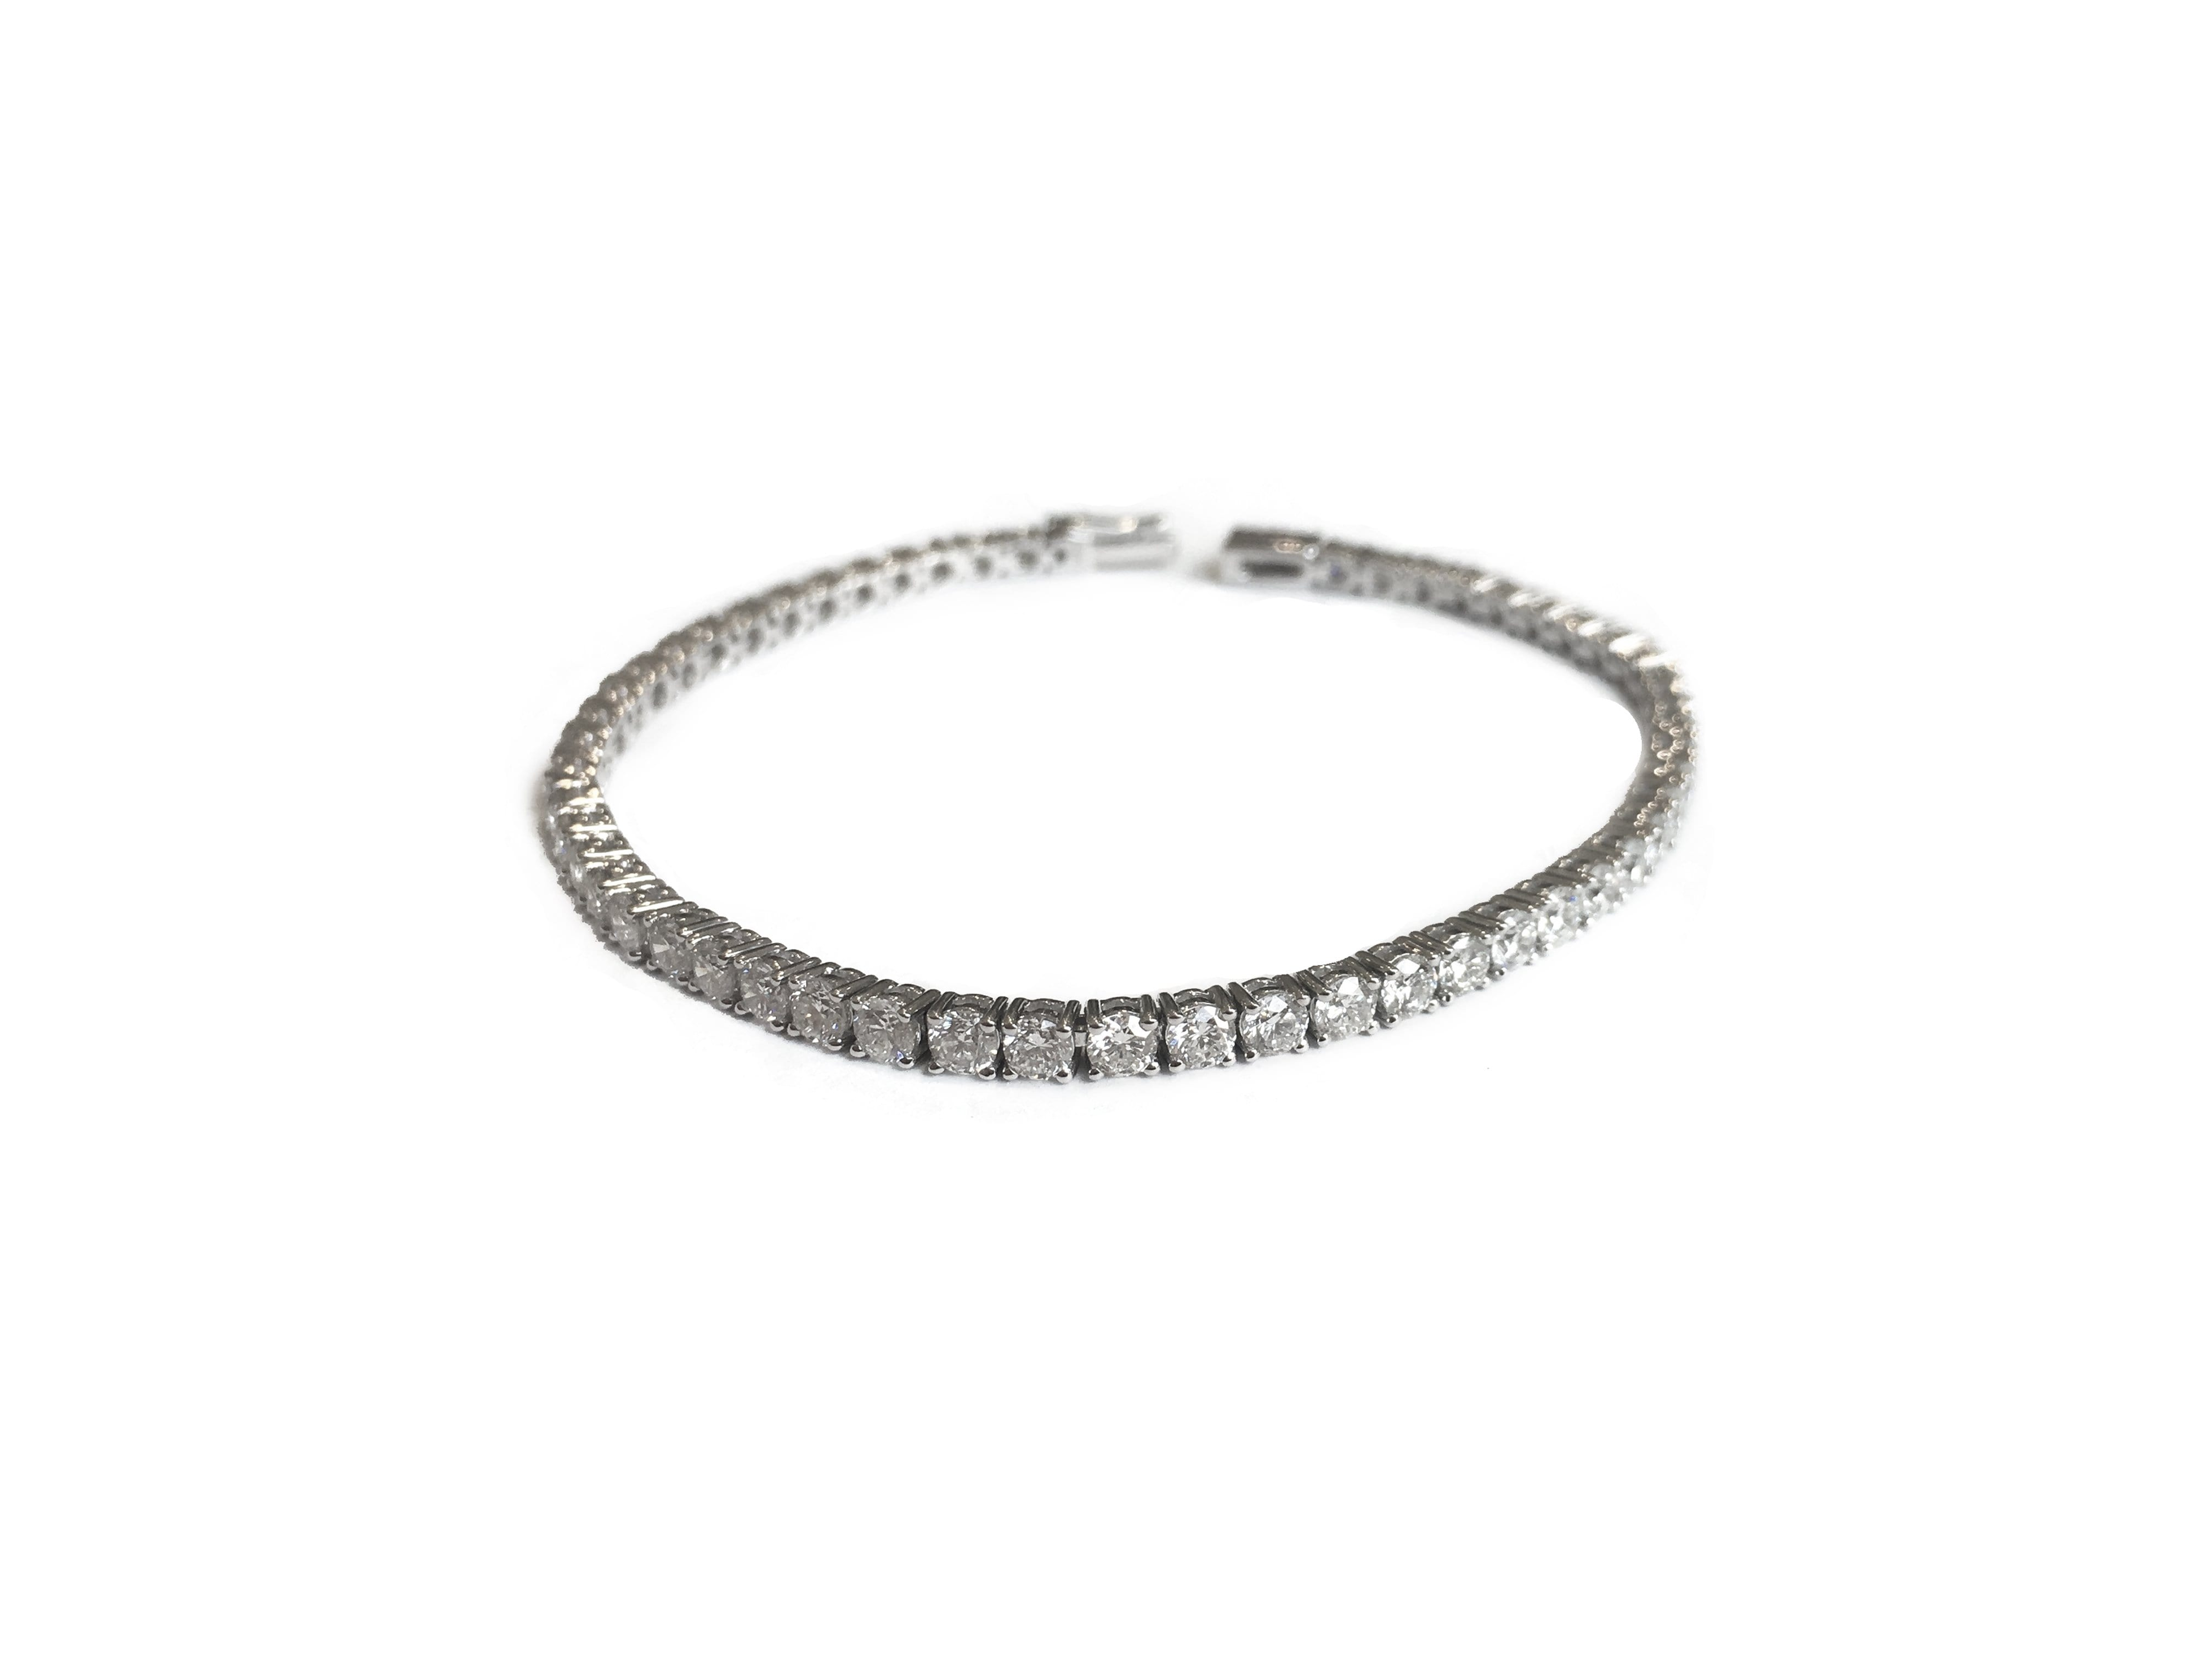 bracelet tennis gold jewelry tw ct in diamond white